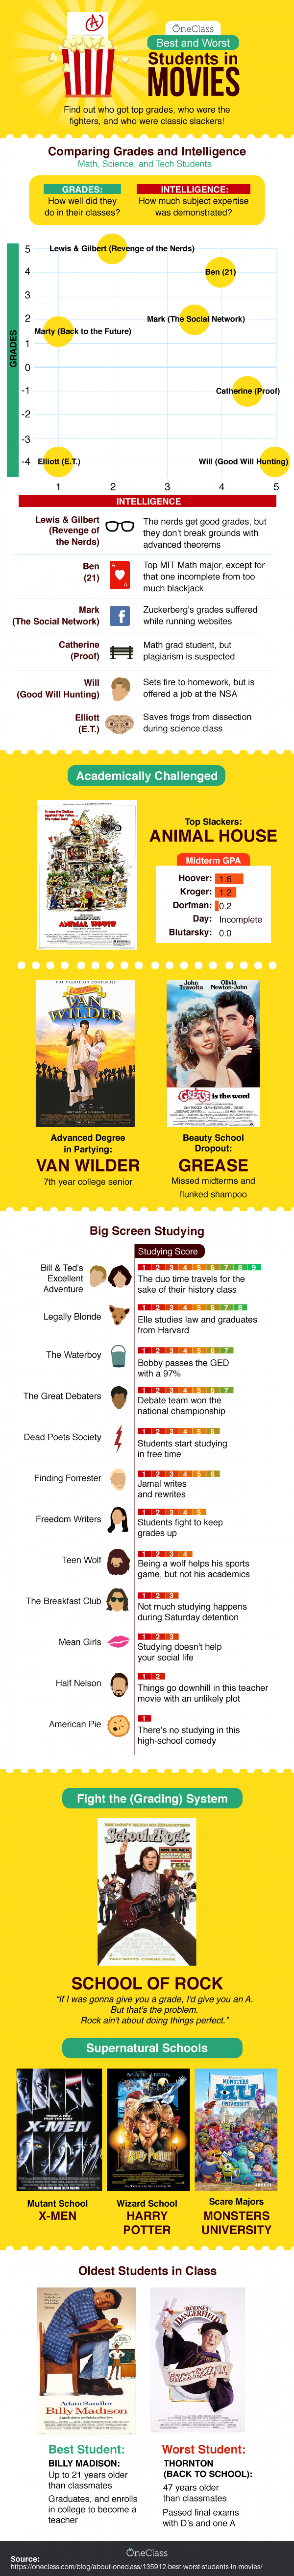 Students in Movies: Comparing Top Students and Slackers Infographic